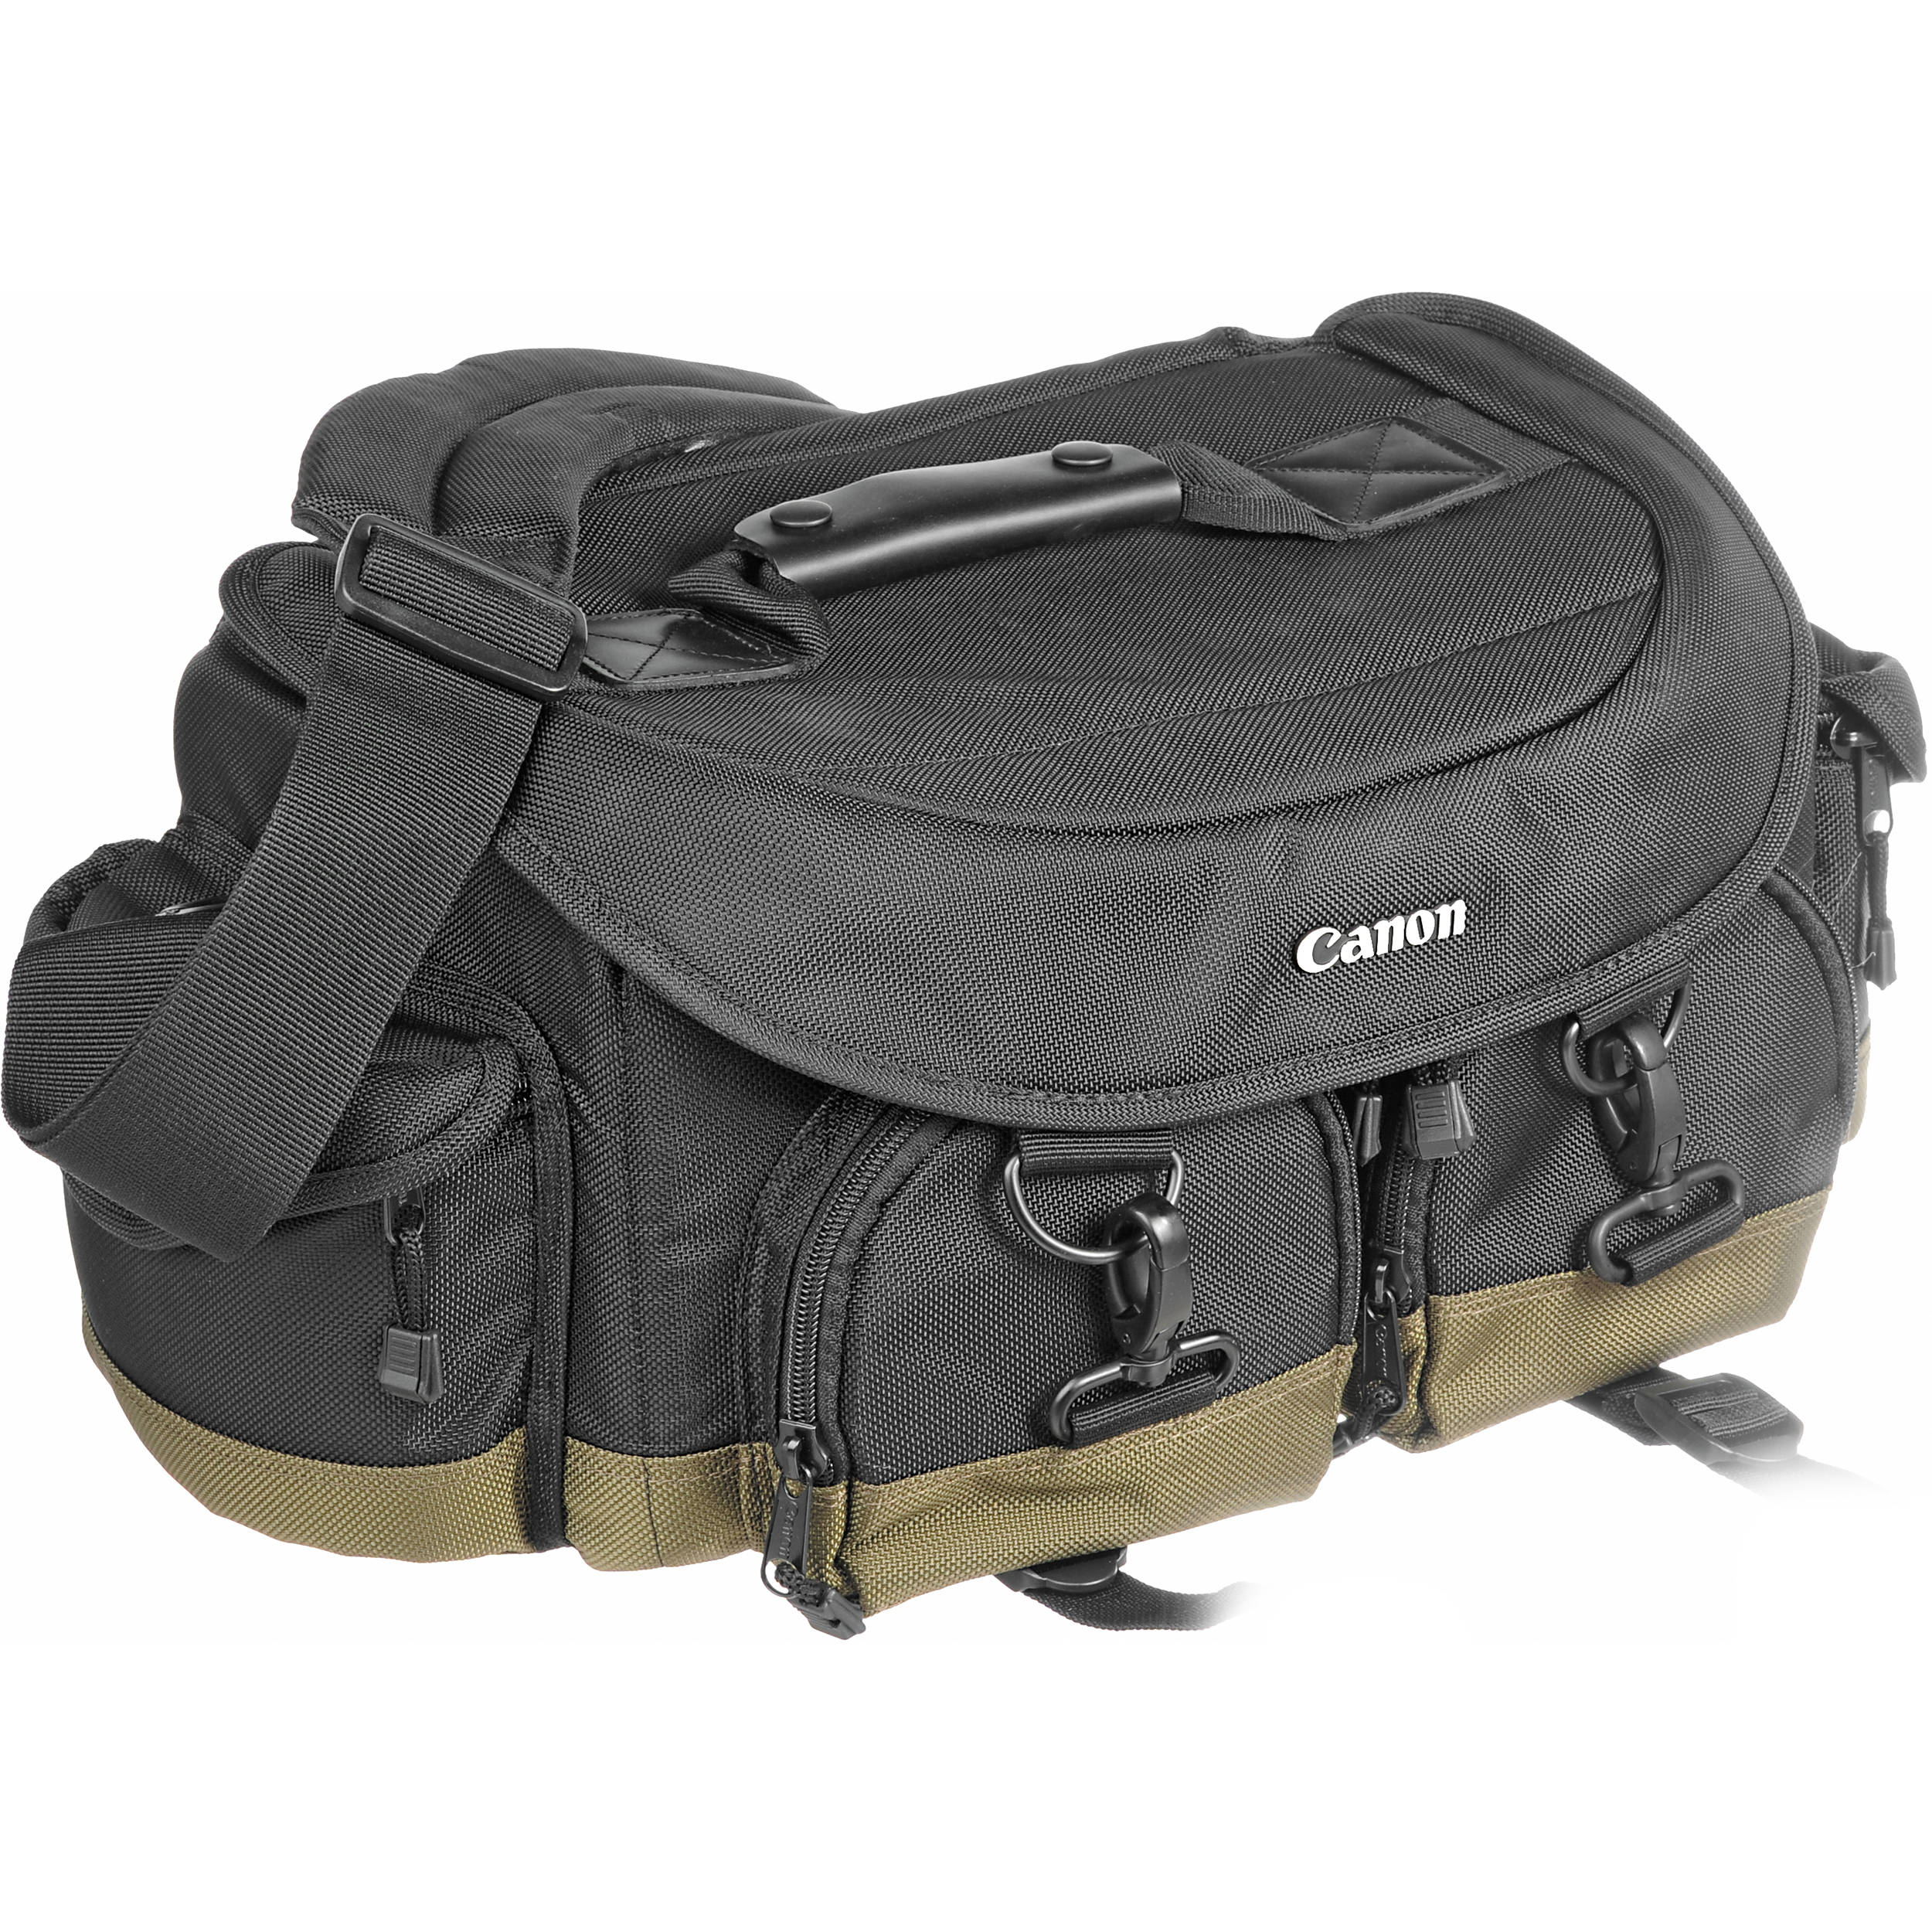 Bag –  Canon Professional Gadget Bag  A great investment. Endless amount of storage for multiple lenses, two camera bodies, flash, batteries, memory cards, chargers, cables, snacks… you name it.